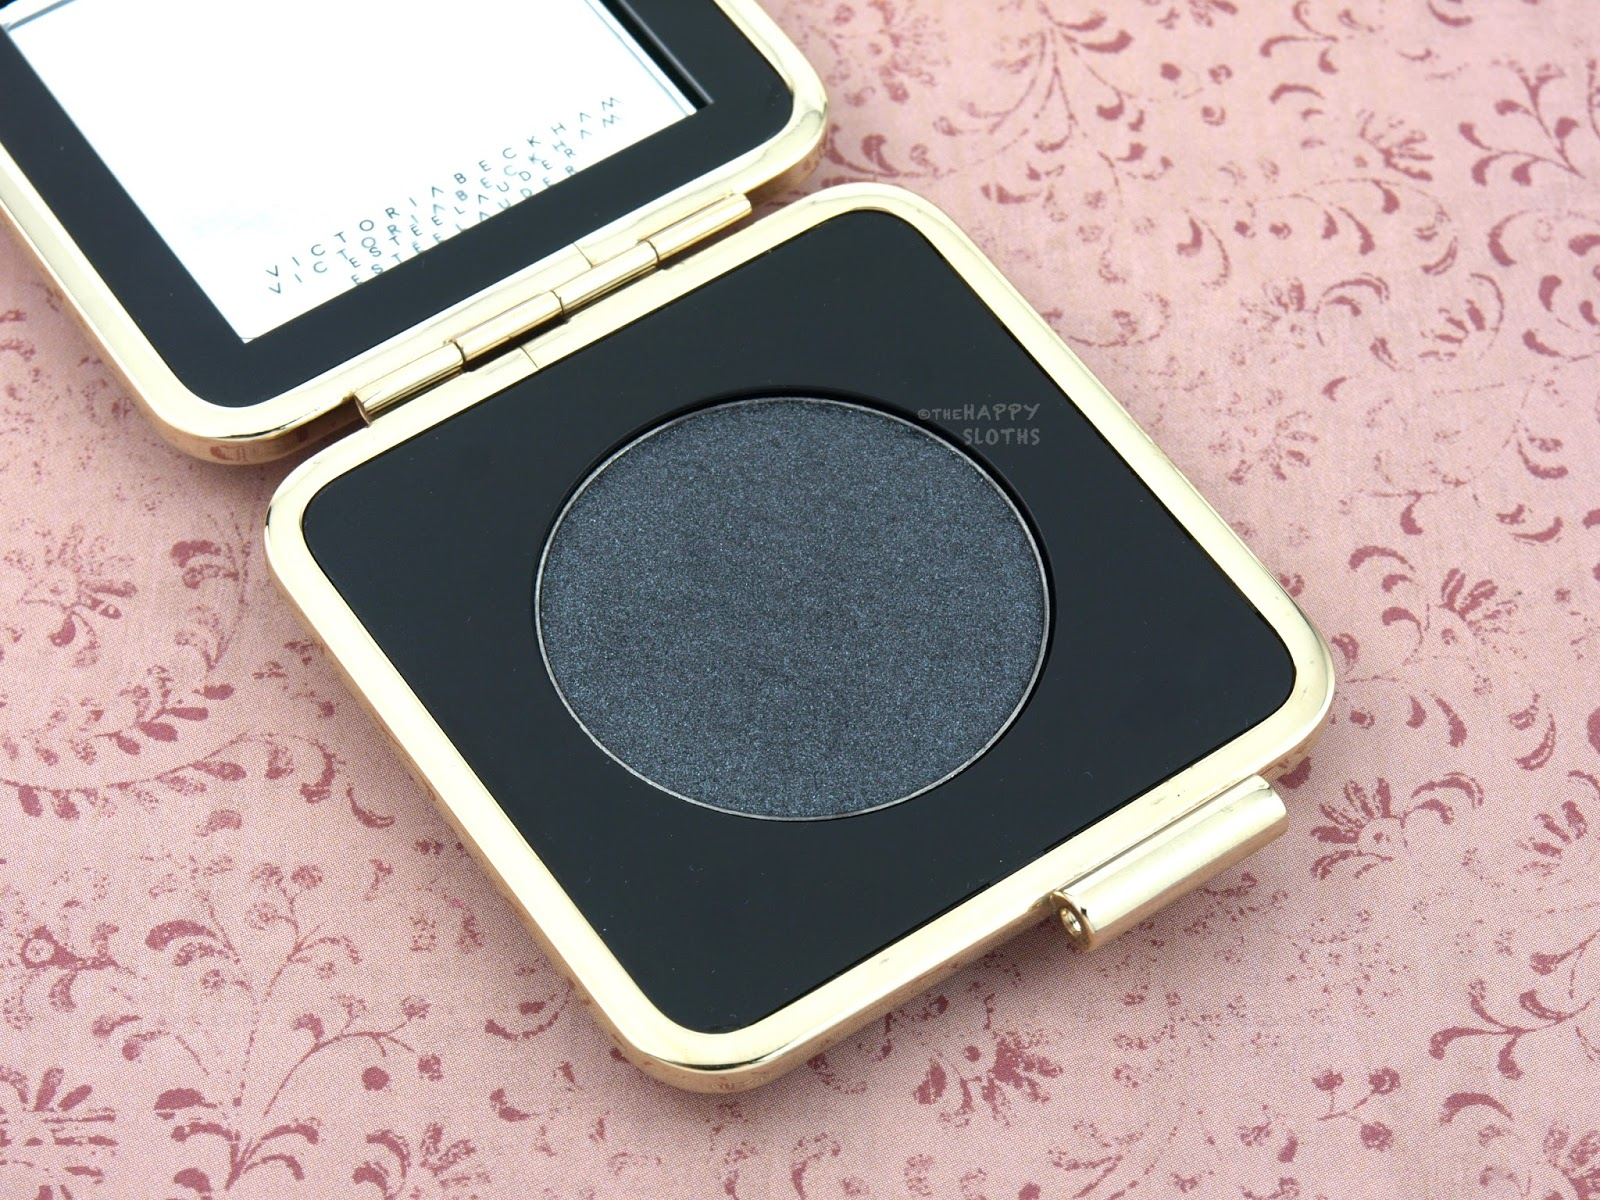 estee lauder x victoria beckham modern mercury highlighter estee lauder x victoria beckham black myrrh eye ink estee lauder x victoria beckham black myrrh eye ink 55 cad described as a pressed gel cream